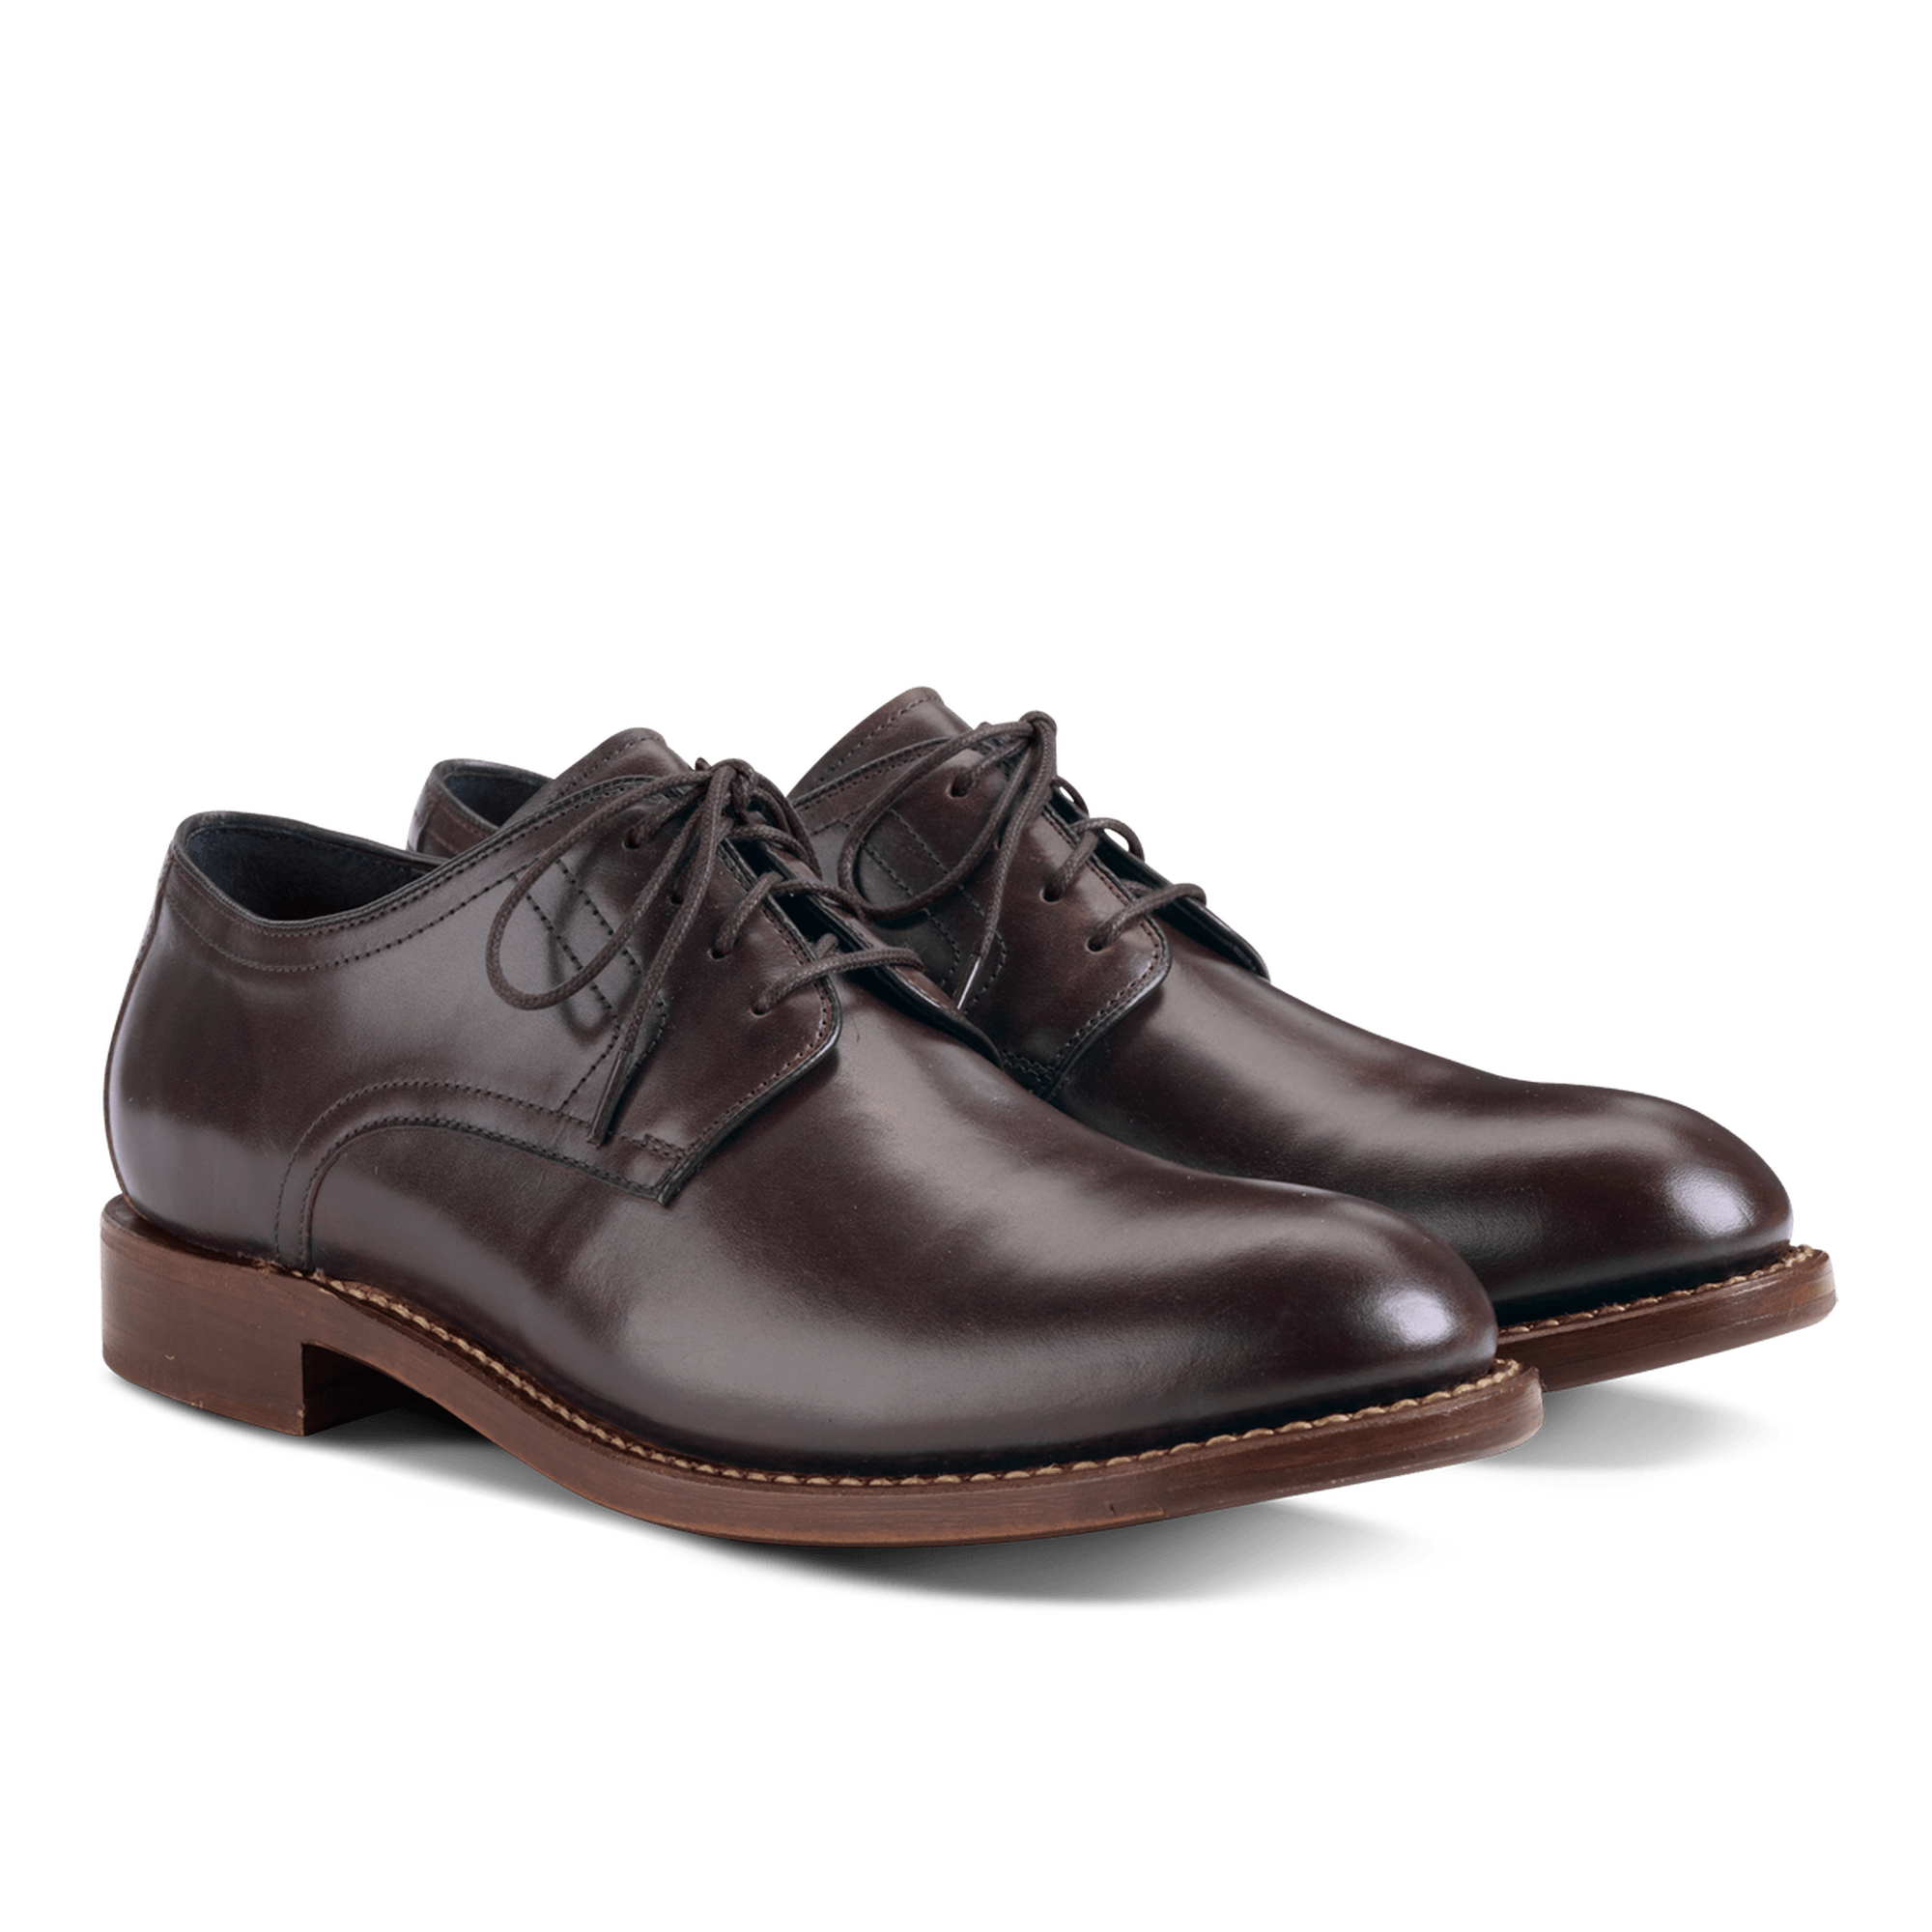 Mens Shoes HD PNG - 94527